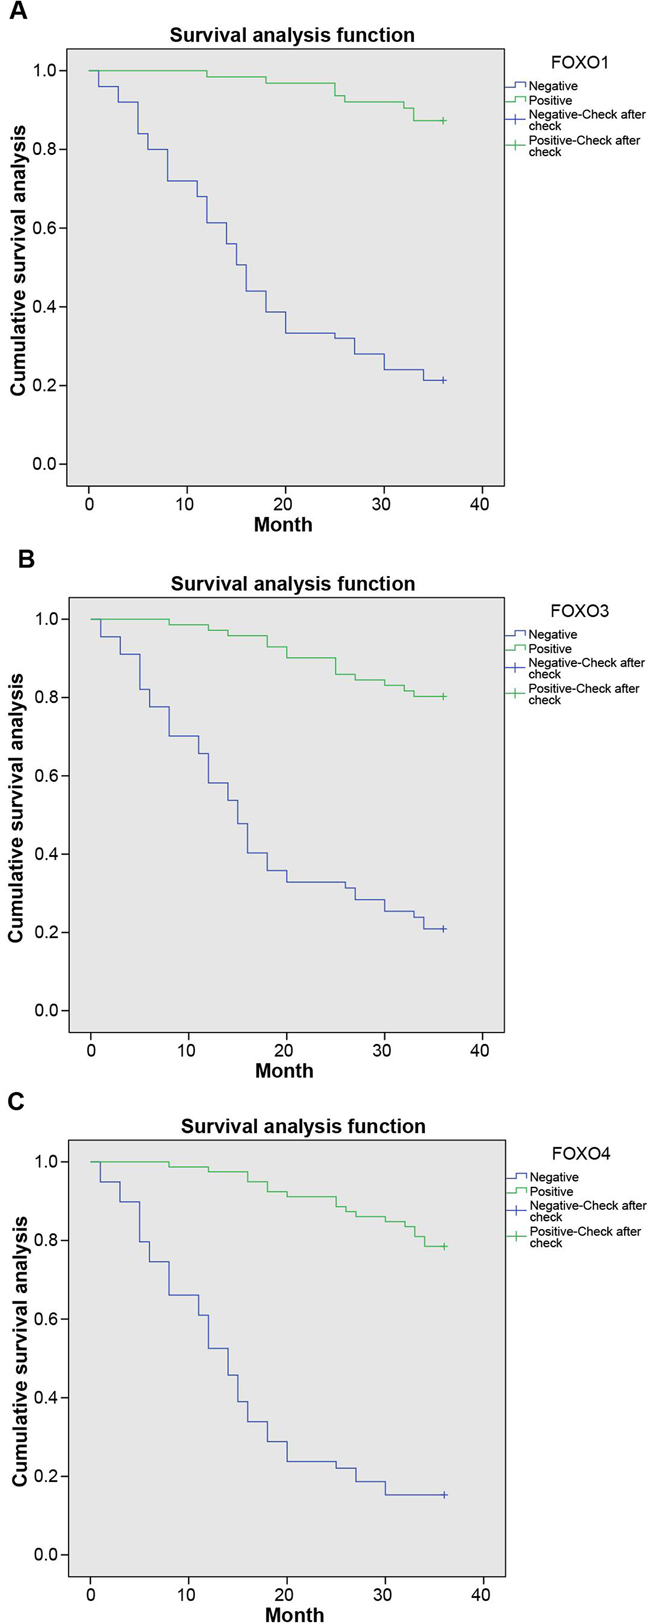 The Kaplan-Meier curve of associations between expression of FOXOs and survival time of patients with bladder cancer.